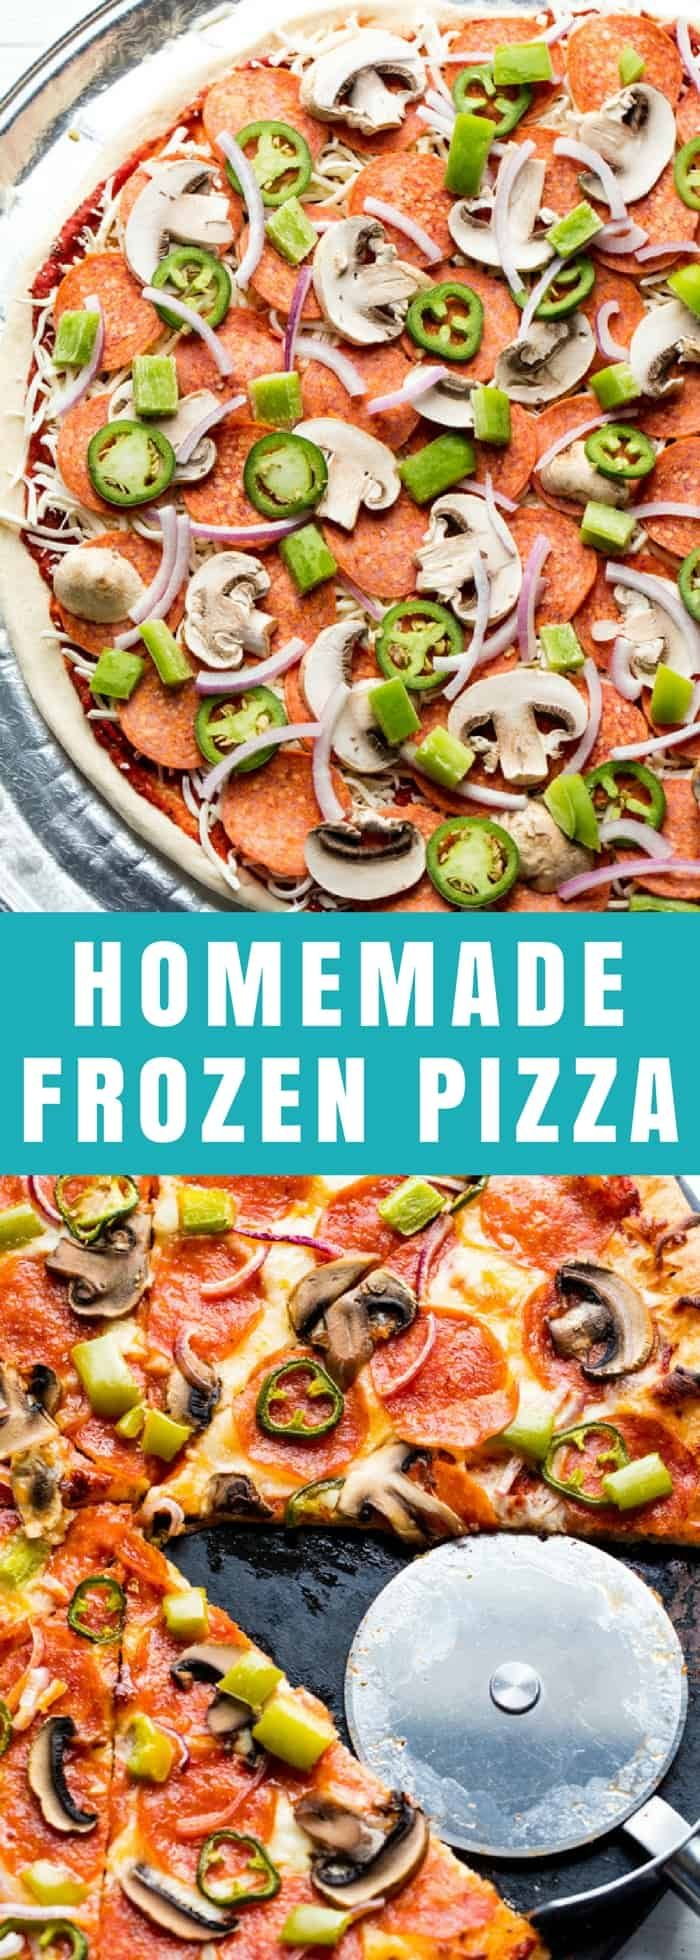 Homemade Frozen Pizzas are easy to make. Stock up your freezer with a quick meal full of homemade goodness. It's better than take-out! #pizza #freezermeal